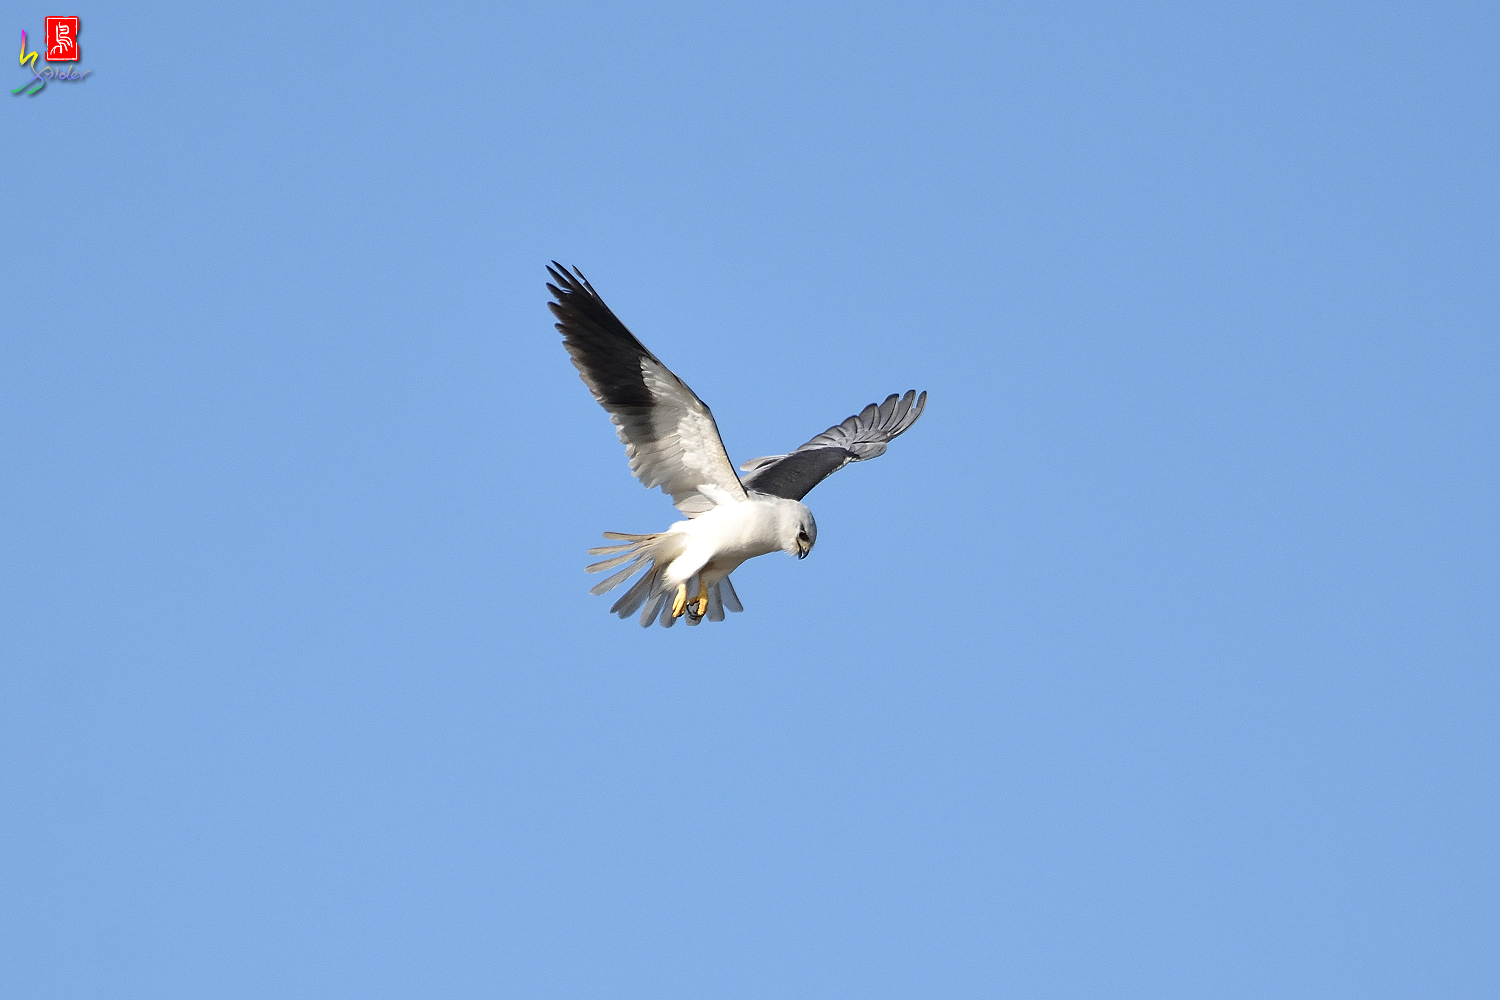 Black-winged_Kite_8182